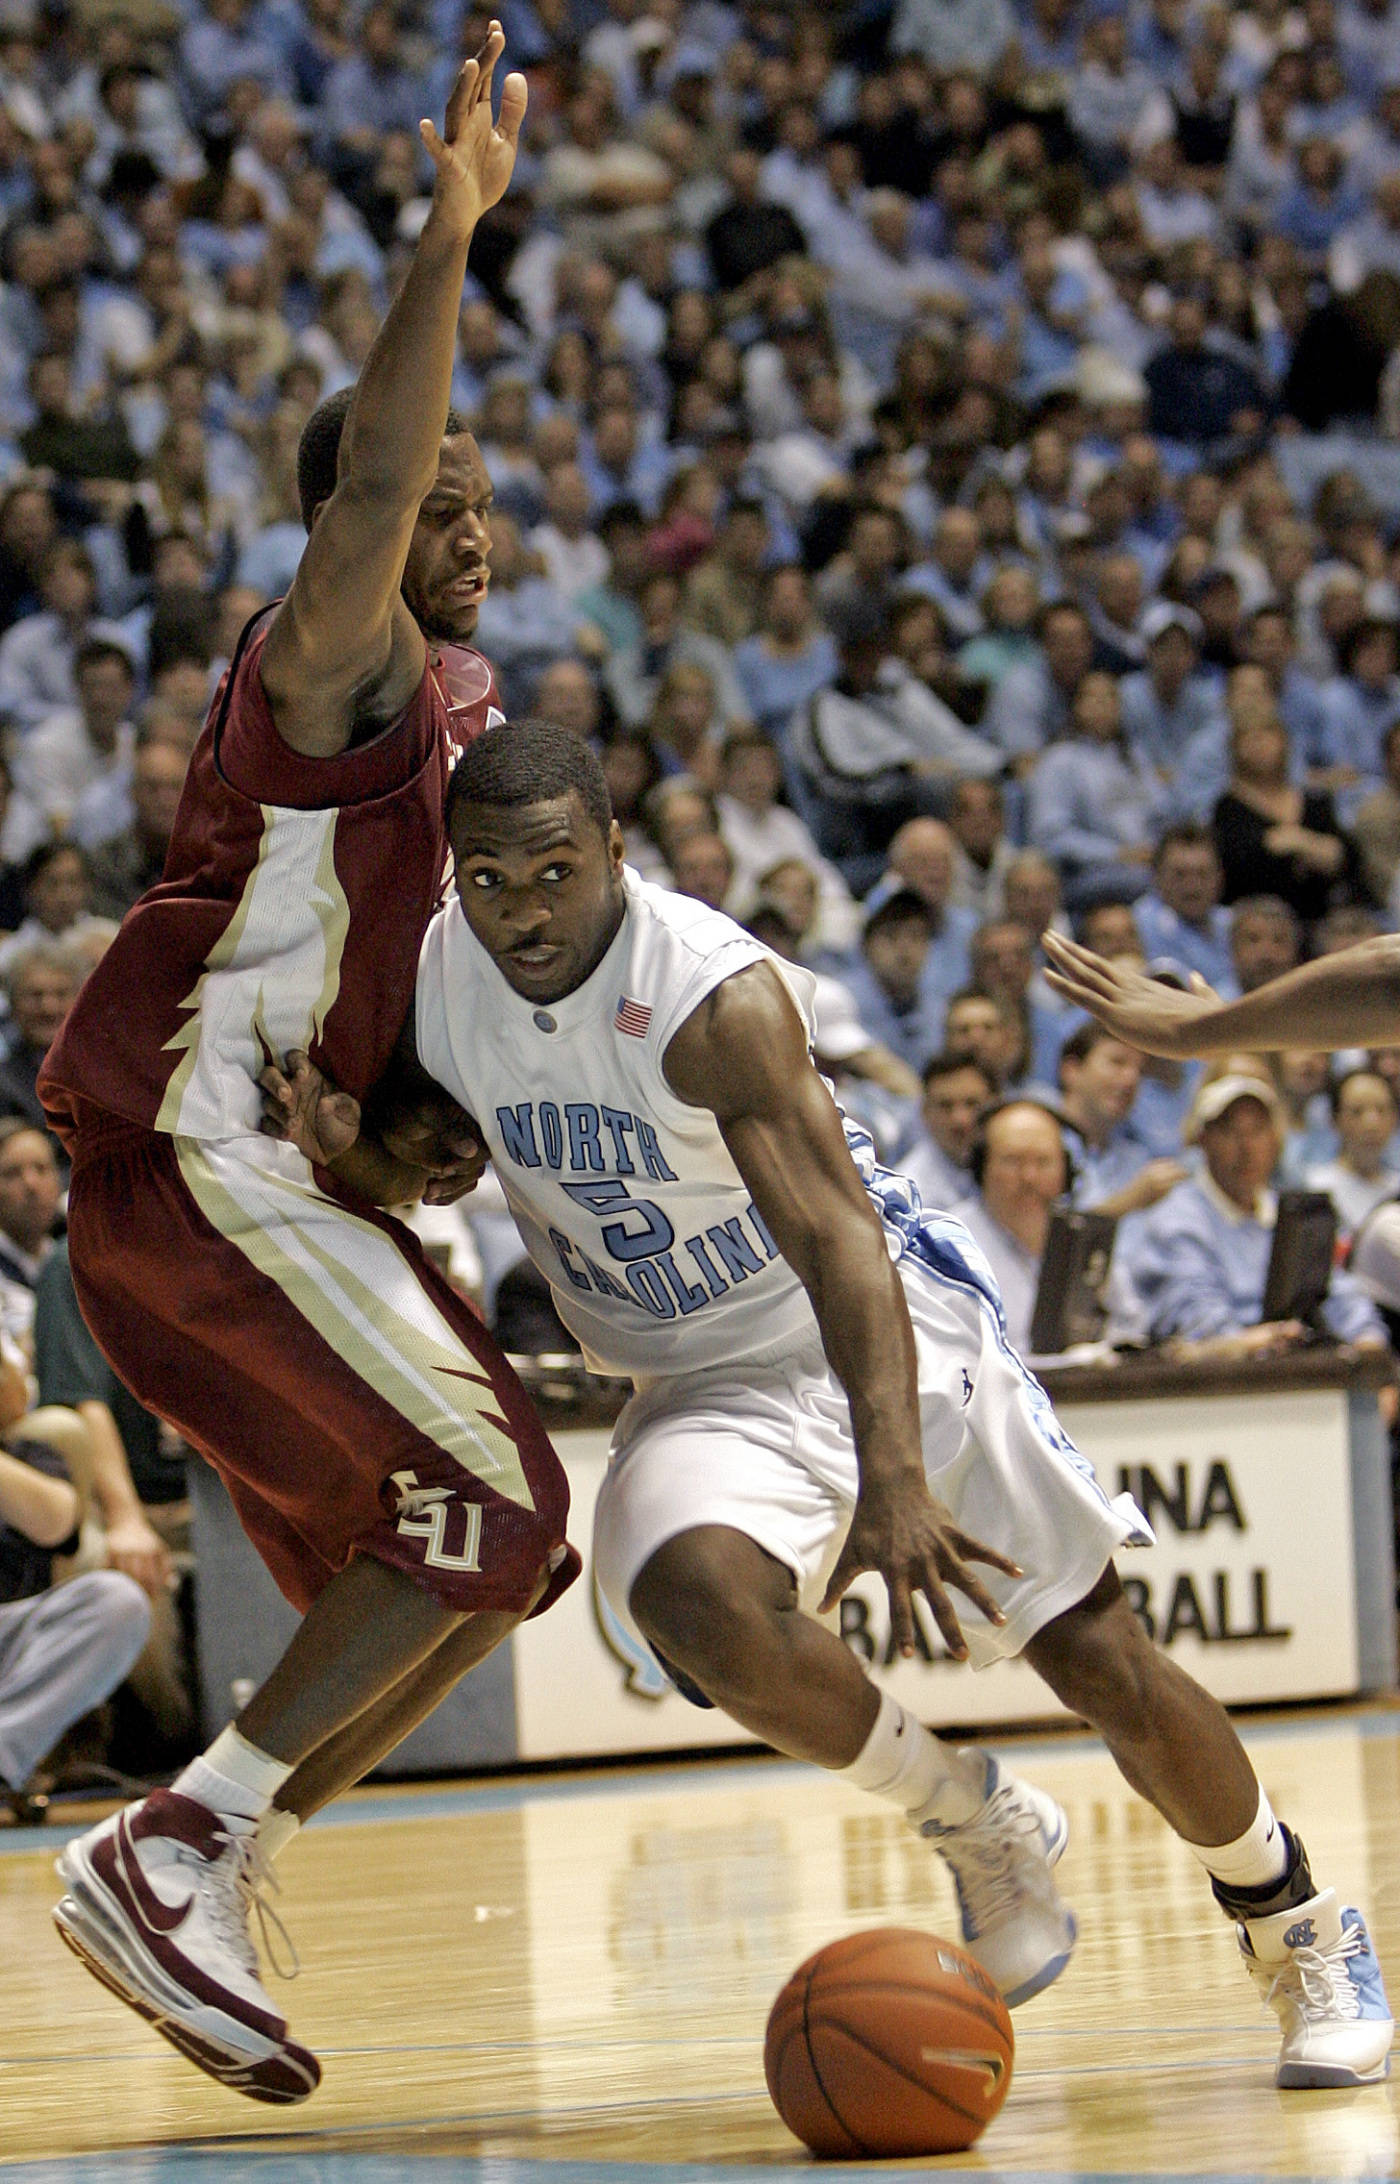 North Carolina's Ty Lawson (5) drives past Florida State's Toney Douglas during the first half of a college basketball game in Chapel Hill, N.C., Tuesday, March 4, 2008. North Carolina won 90-77. (AP Photo/Gerry Broome)